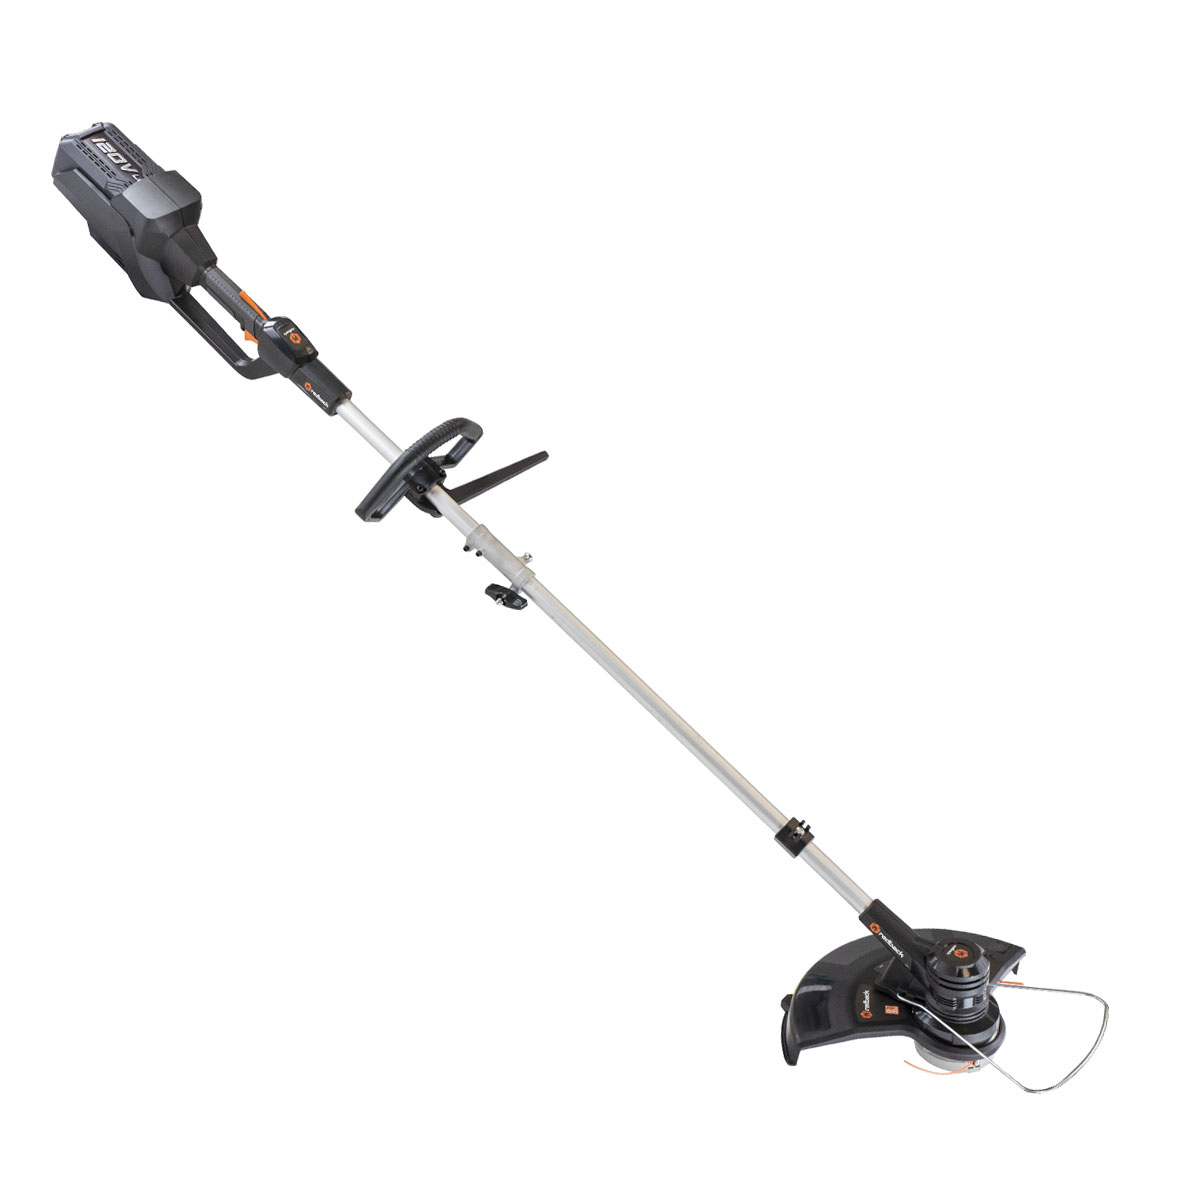 New Redback 120v Lithium Ion Cordless String Trimmer